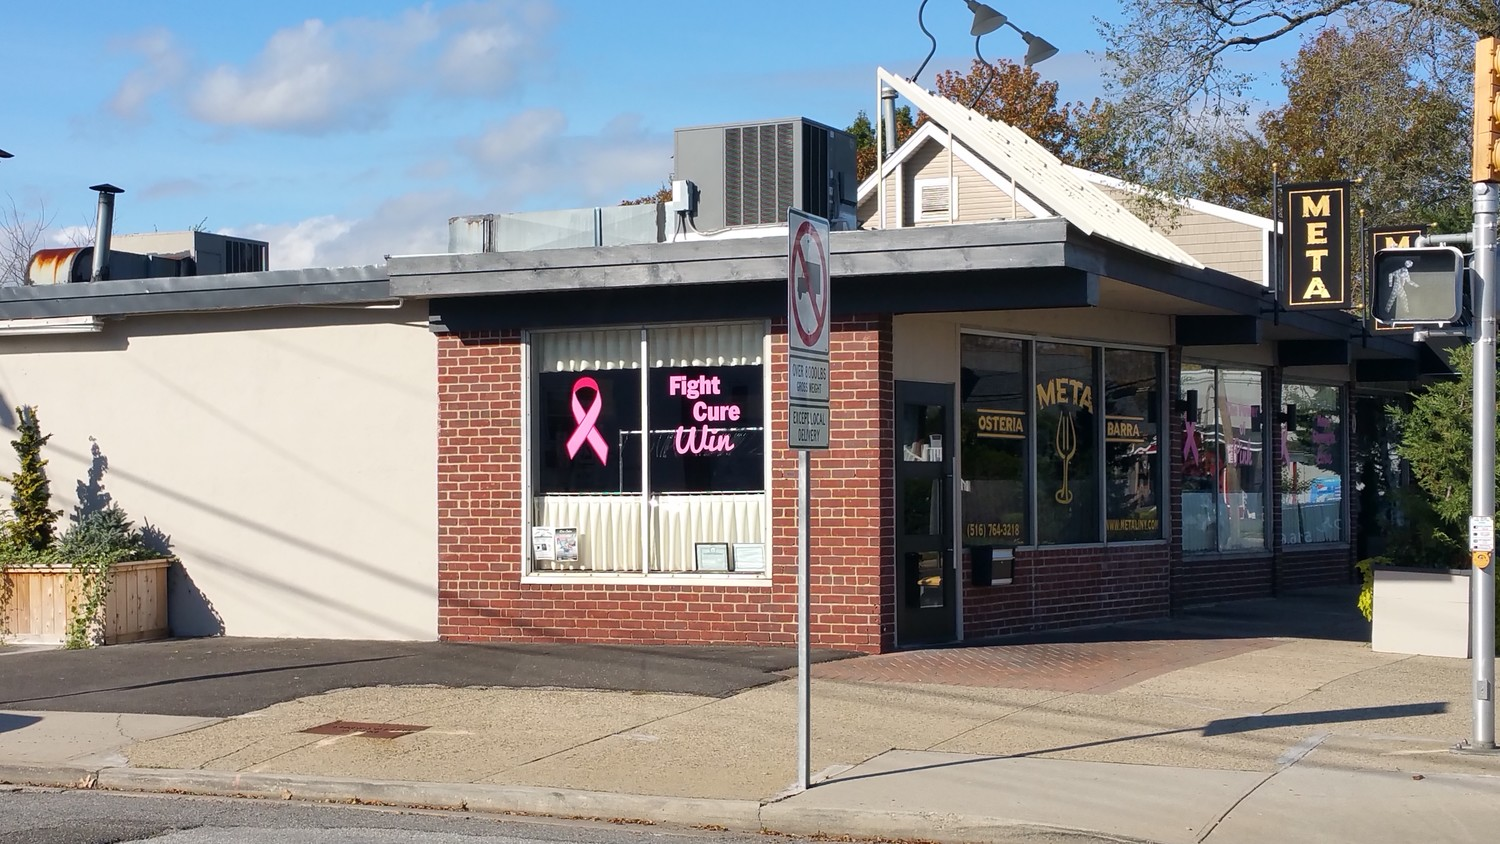 Oceanside Italian eatery Meta Osteria & Barra is holding its annual breast cancer fundraiser on Nov. 27 benefitting the Hewlett House.